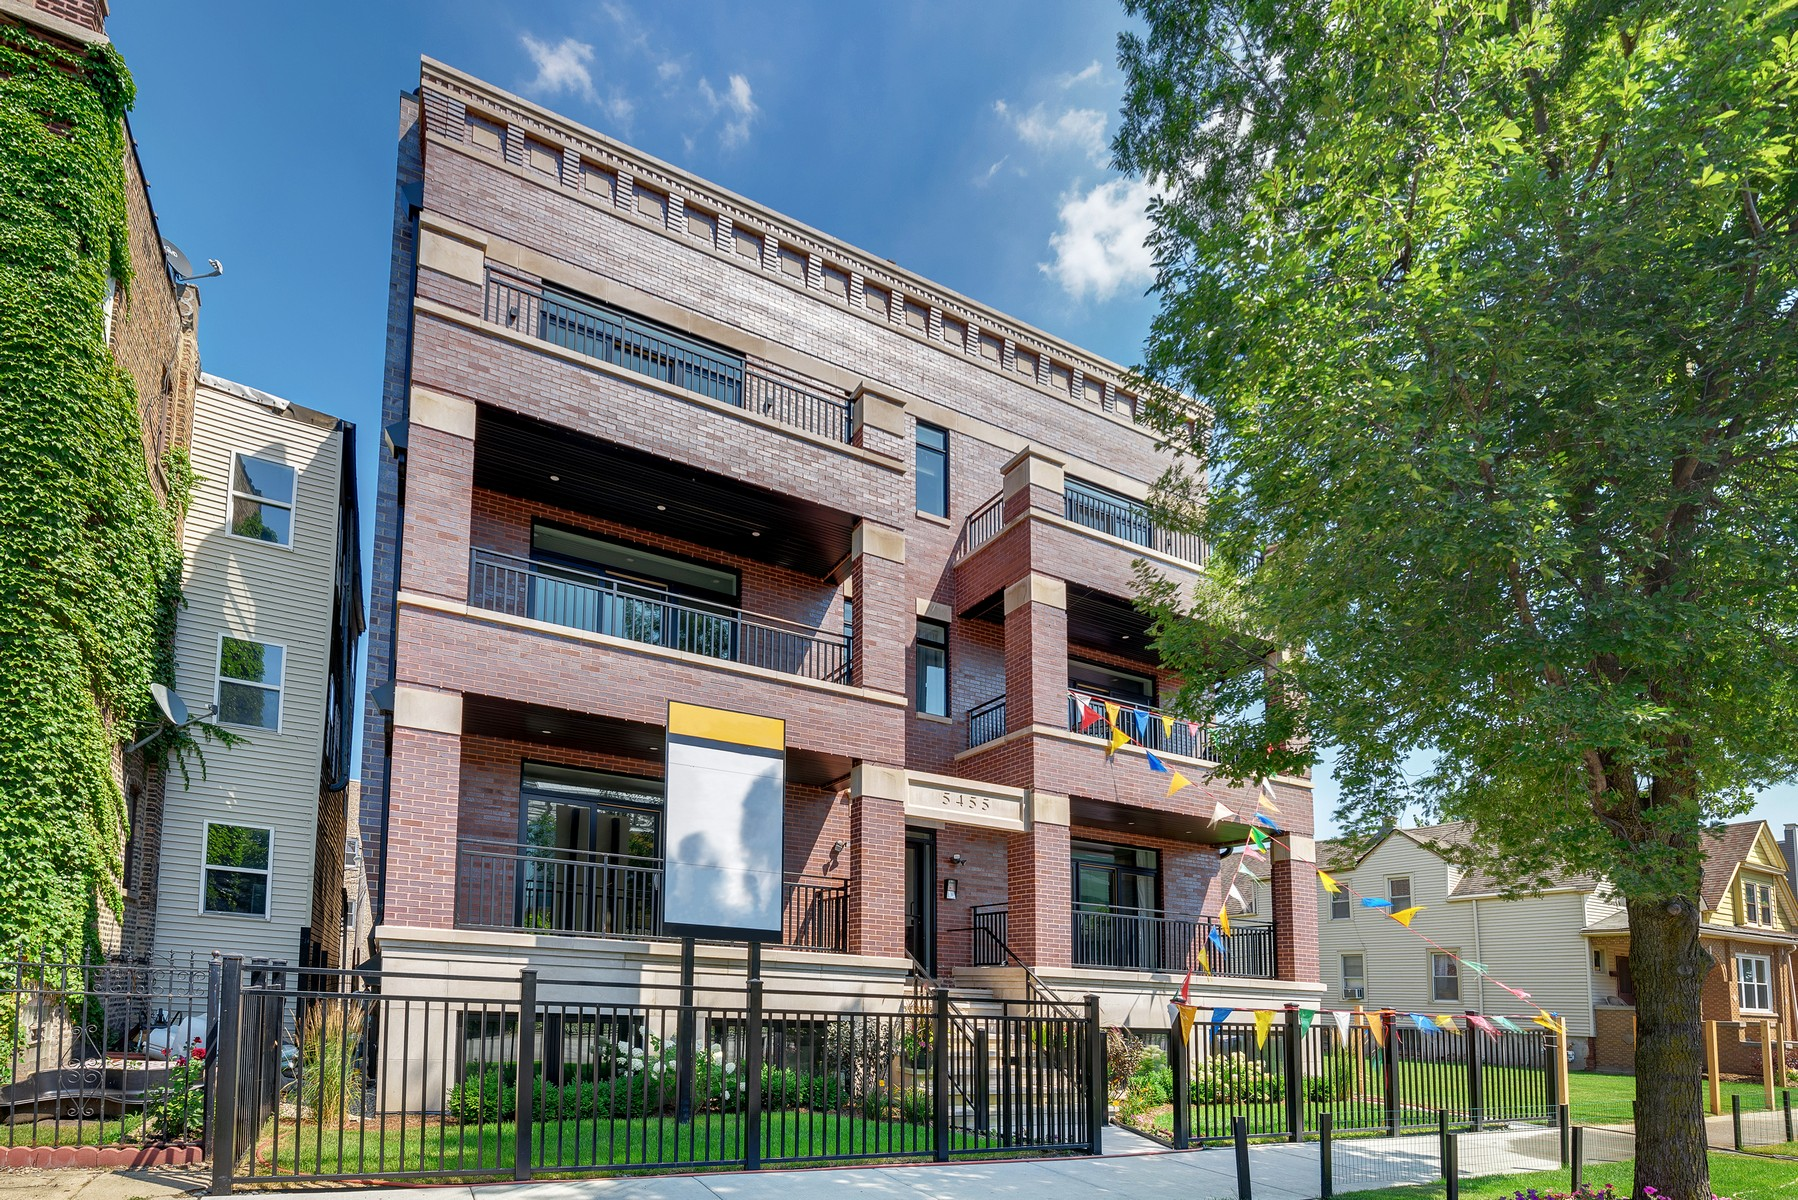 콘도미니엄 용 매매 에 Andersonville's hottest new development! 5455 N Ravenswood Ave Unit 1N Lakeview, Chicago, 일리노이즈, 60640 미국